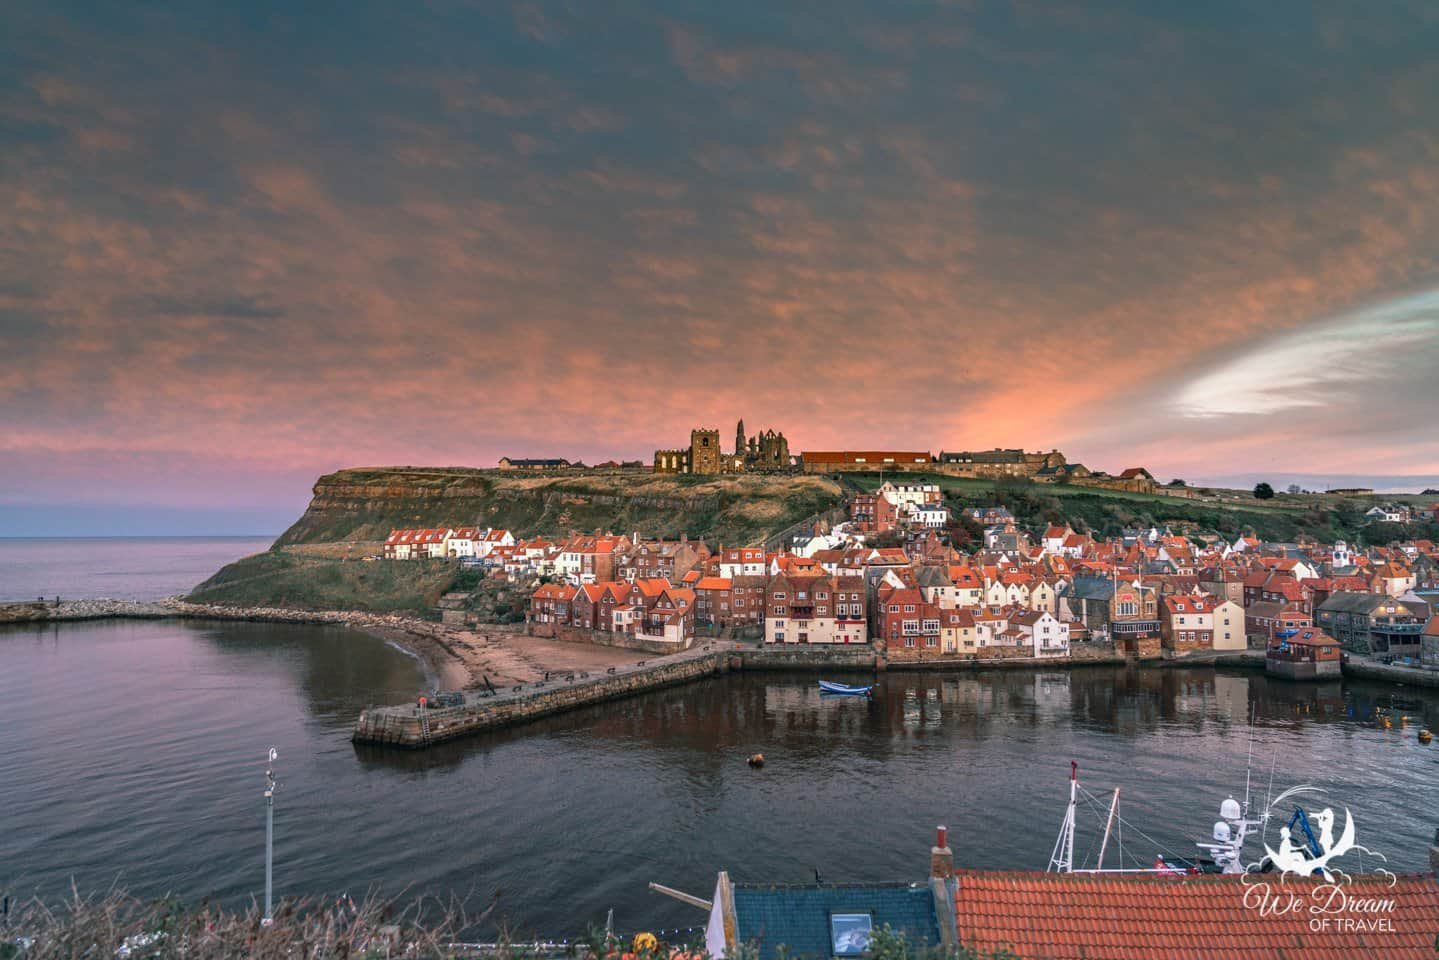 Sunset over Whitby Abbey from East Terrace.